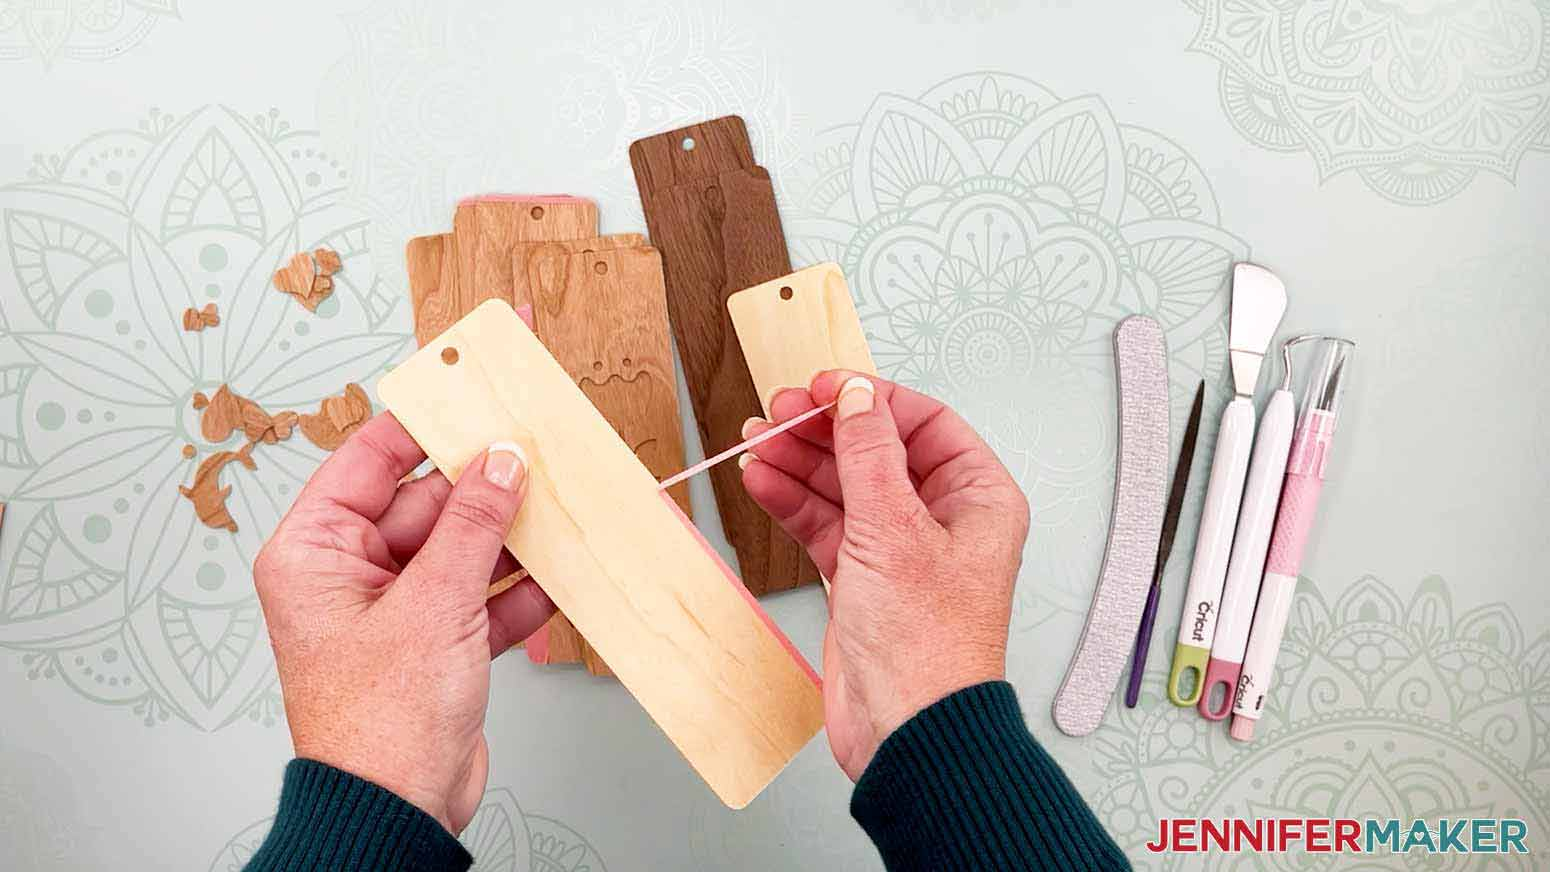 Remove excess painter's tape from the veneer for my wooden bookmarks project